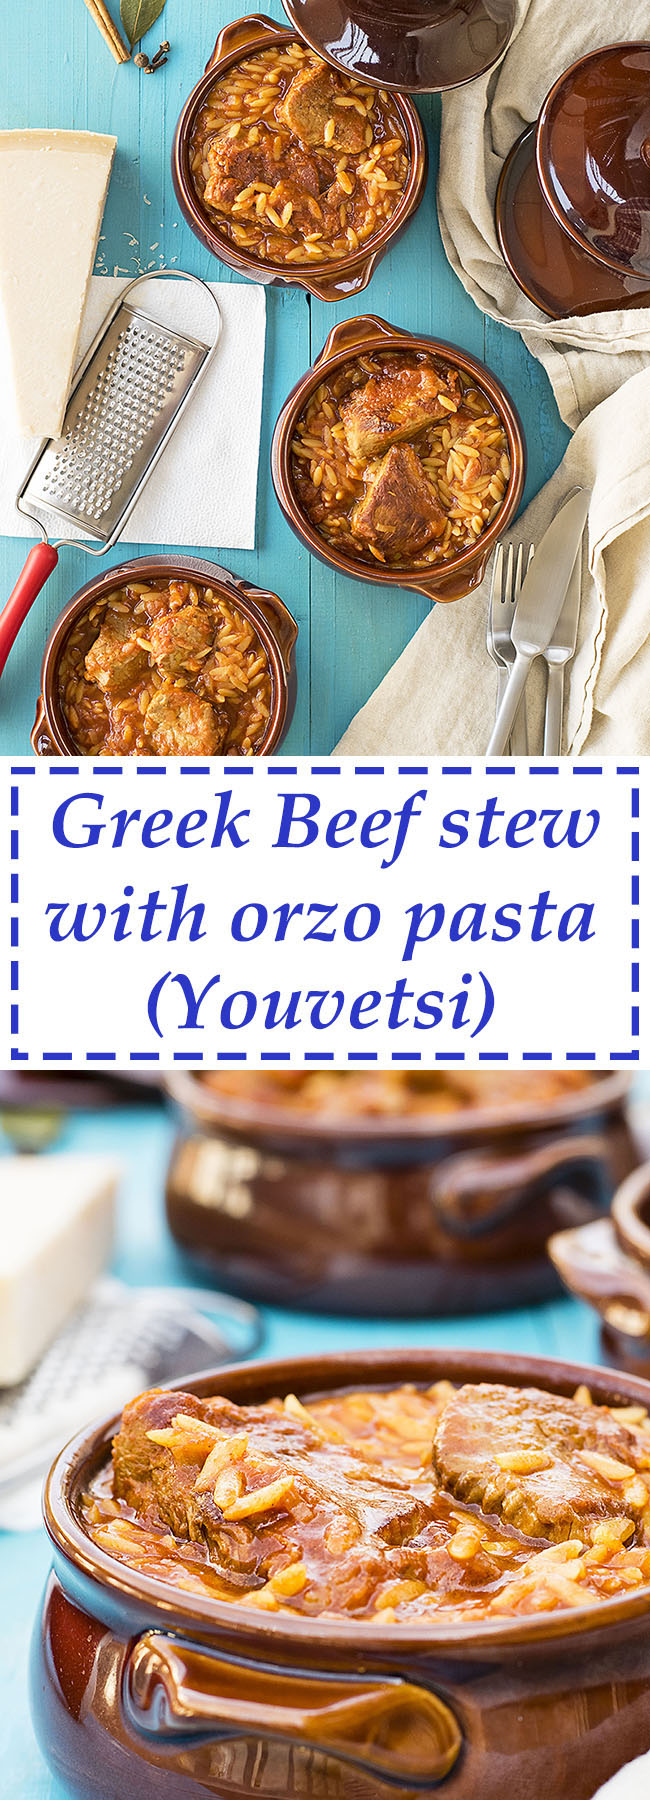 Greek beef stew with orzo pasta (Youvetsi) 5